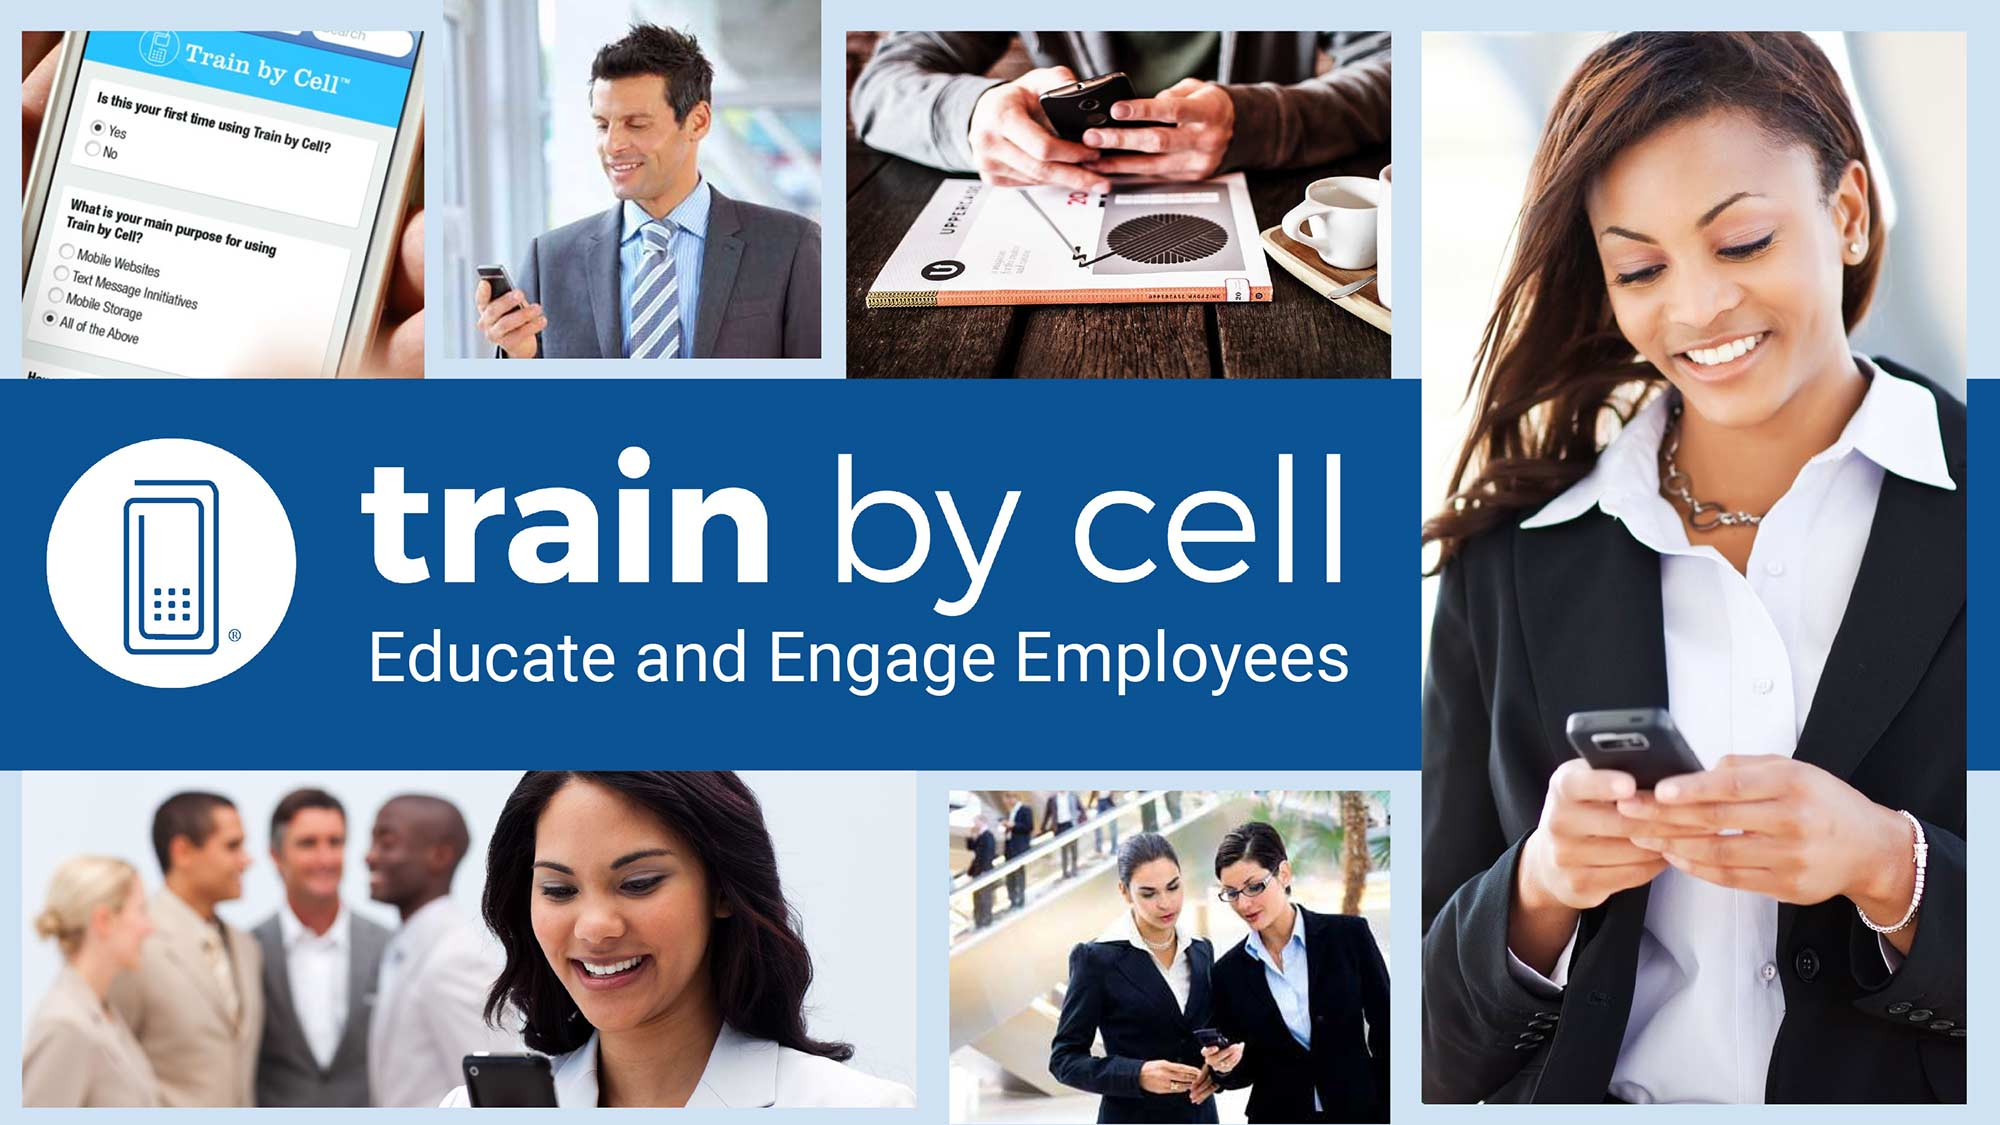 Train by Cell Pitch Deck